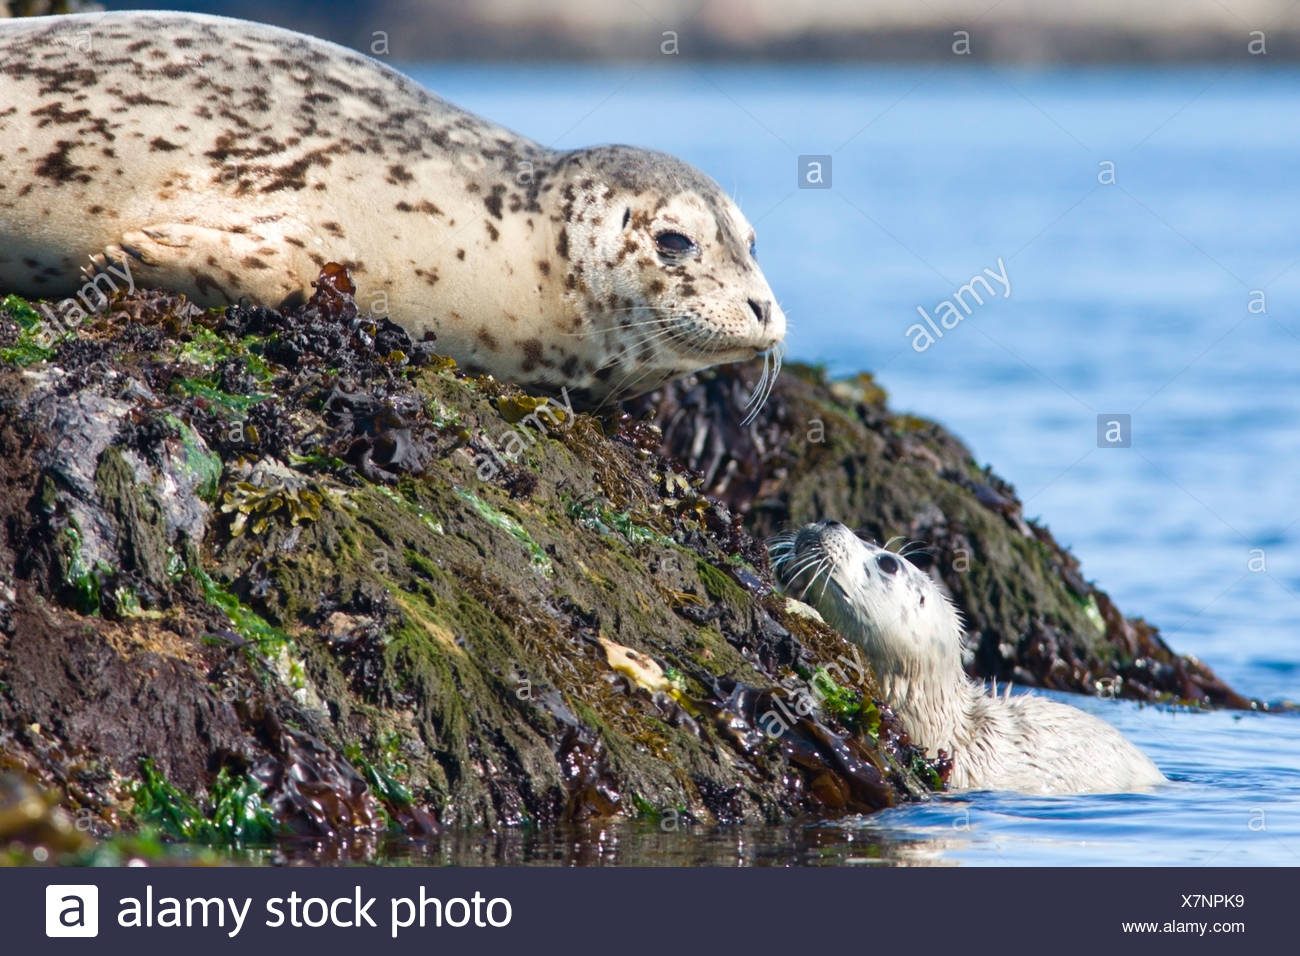 Fur seals (Callorhinus ursinus) adult and pup basking on rocks near Victoria, Vancouver Island, British Columbia, Canada - Stock Image